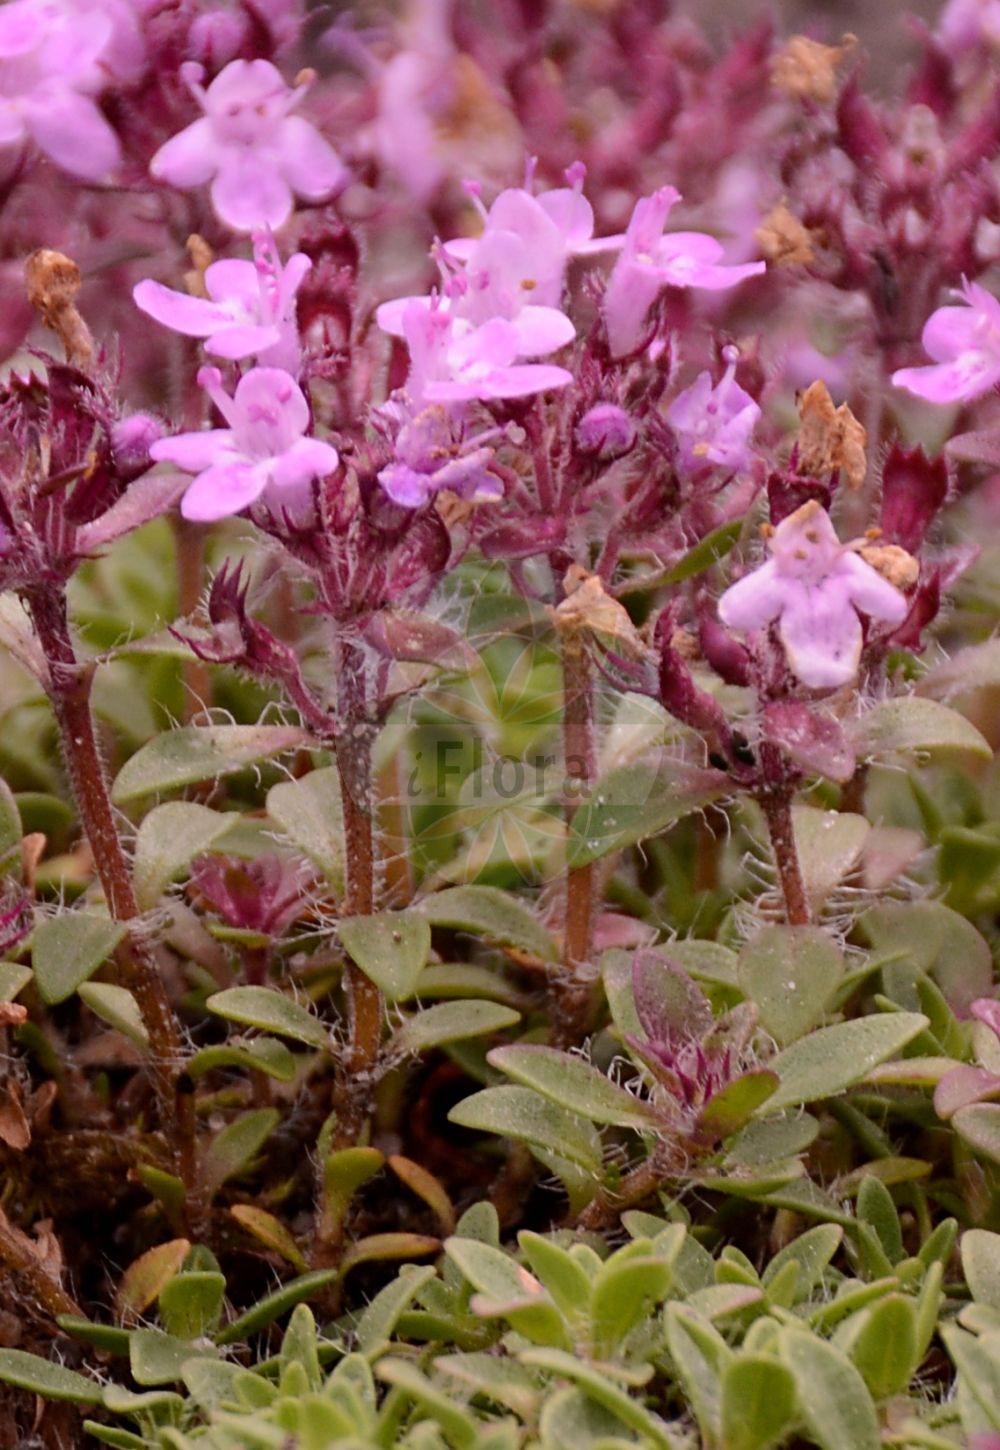 Foto von Thymus serpyllum (Gewoehnlicher Sand-Thymian - Breckland Thyme). Das Foto wurde in Bremen, Deutschland aufgenommen. ---- Photo of Thymus serpyllum (Gewoehnlicher Sand-Thymian - Breckland Thyme).The picture was taken in Bremen, Germany.(Thymus serpyllum,Gewoehnlicher Sand-Thymian,Breckland Thyme,Origanum serpyllum,Serpyllum vulgare,,Innsbrucker Quendel,Innsbrucker Thymian,Sand-Quendel,Sand-Thymian,Tiroler Quendel,Breckland Garden,Creeping Thyme,Mother-of-Thyme,Thymus,Thymian,Thyme,Lamiaceae,Lippenbluetengewaechse;Lippenbluetler,Nettle family)